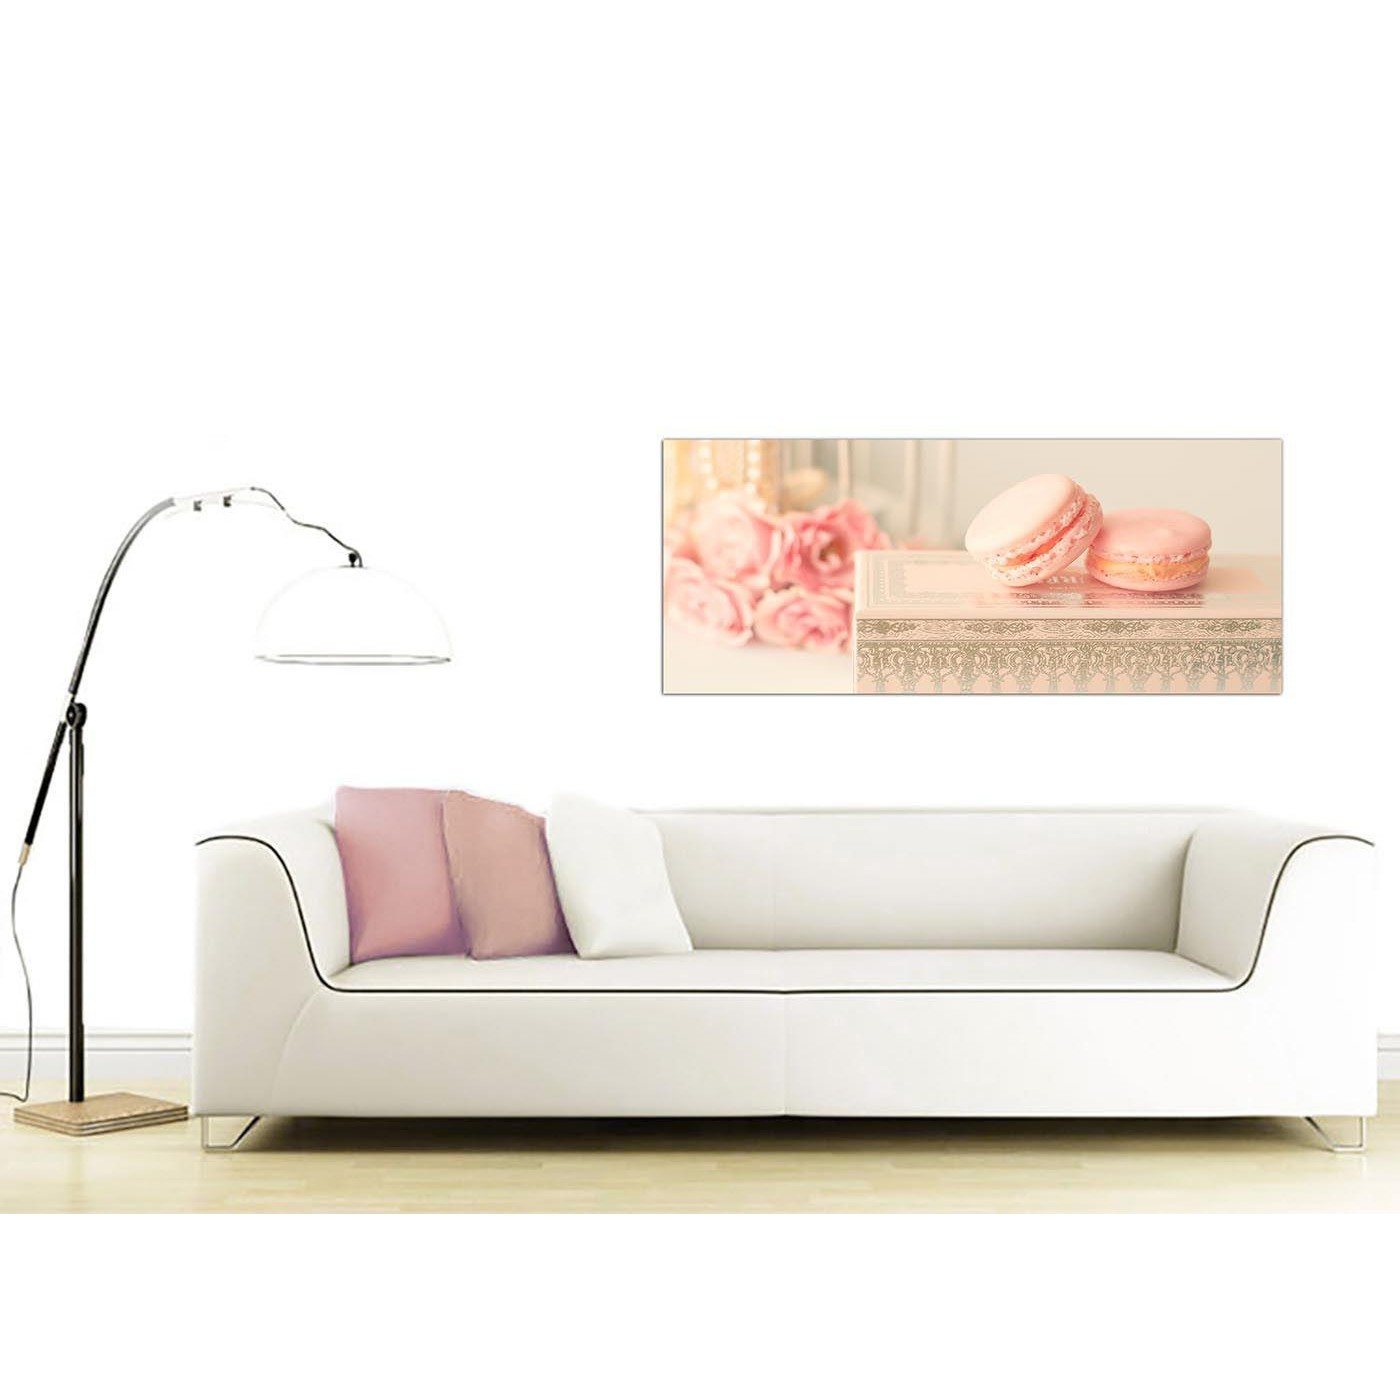 Modern Shabby Chic Bedroom: Pink Cream French Shabby Chic Bedroom Abstract Canvas